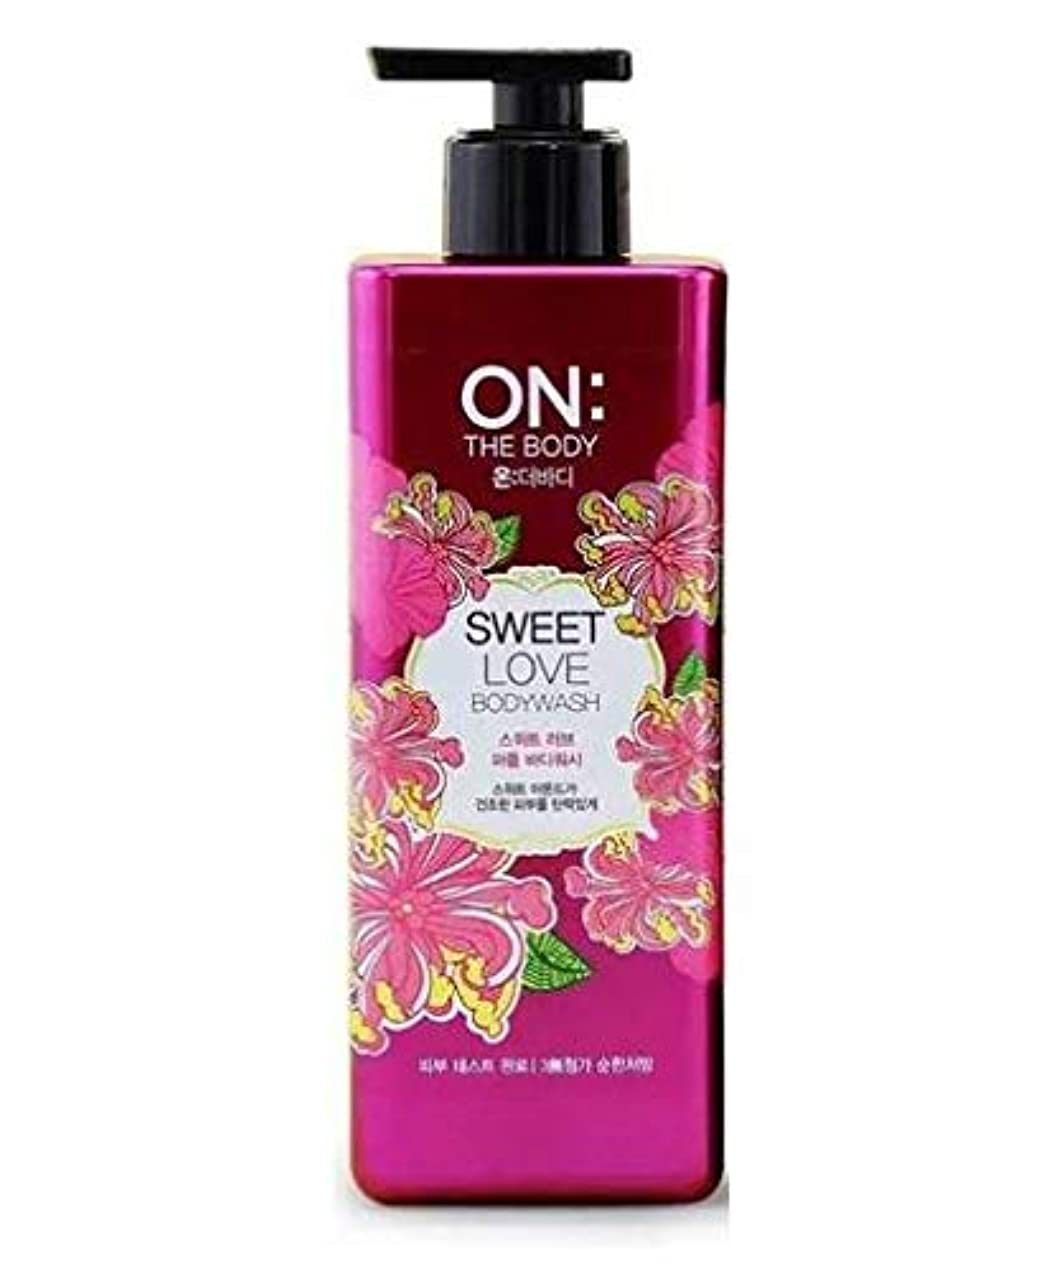 ON THE BODY Sweet Love Body Wash 500g/17.6oz